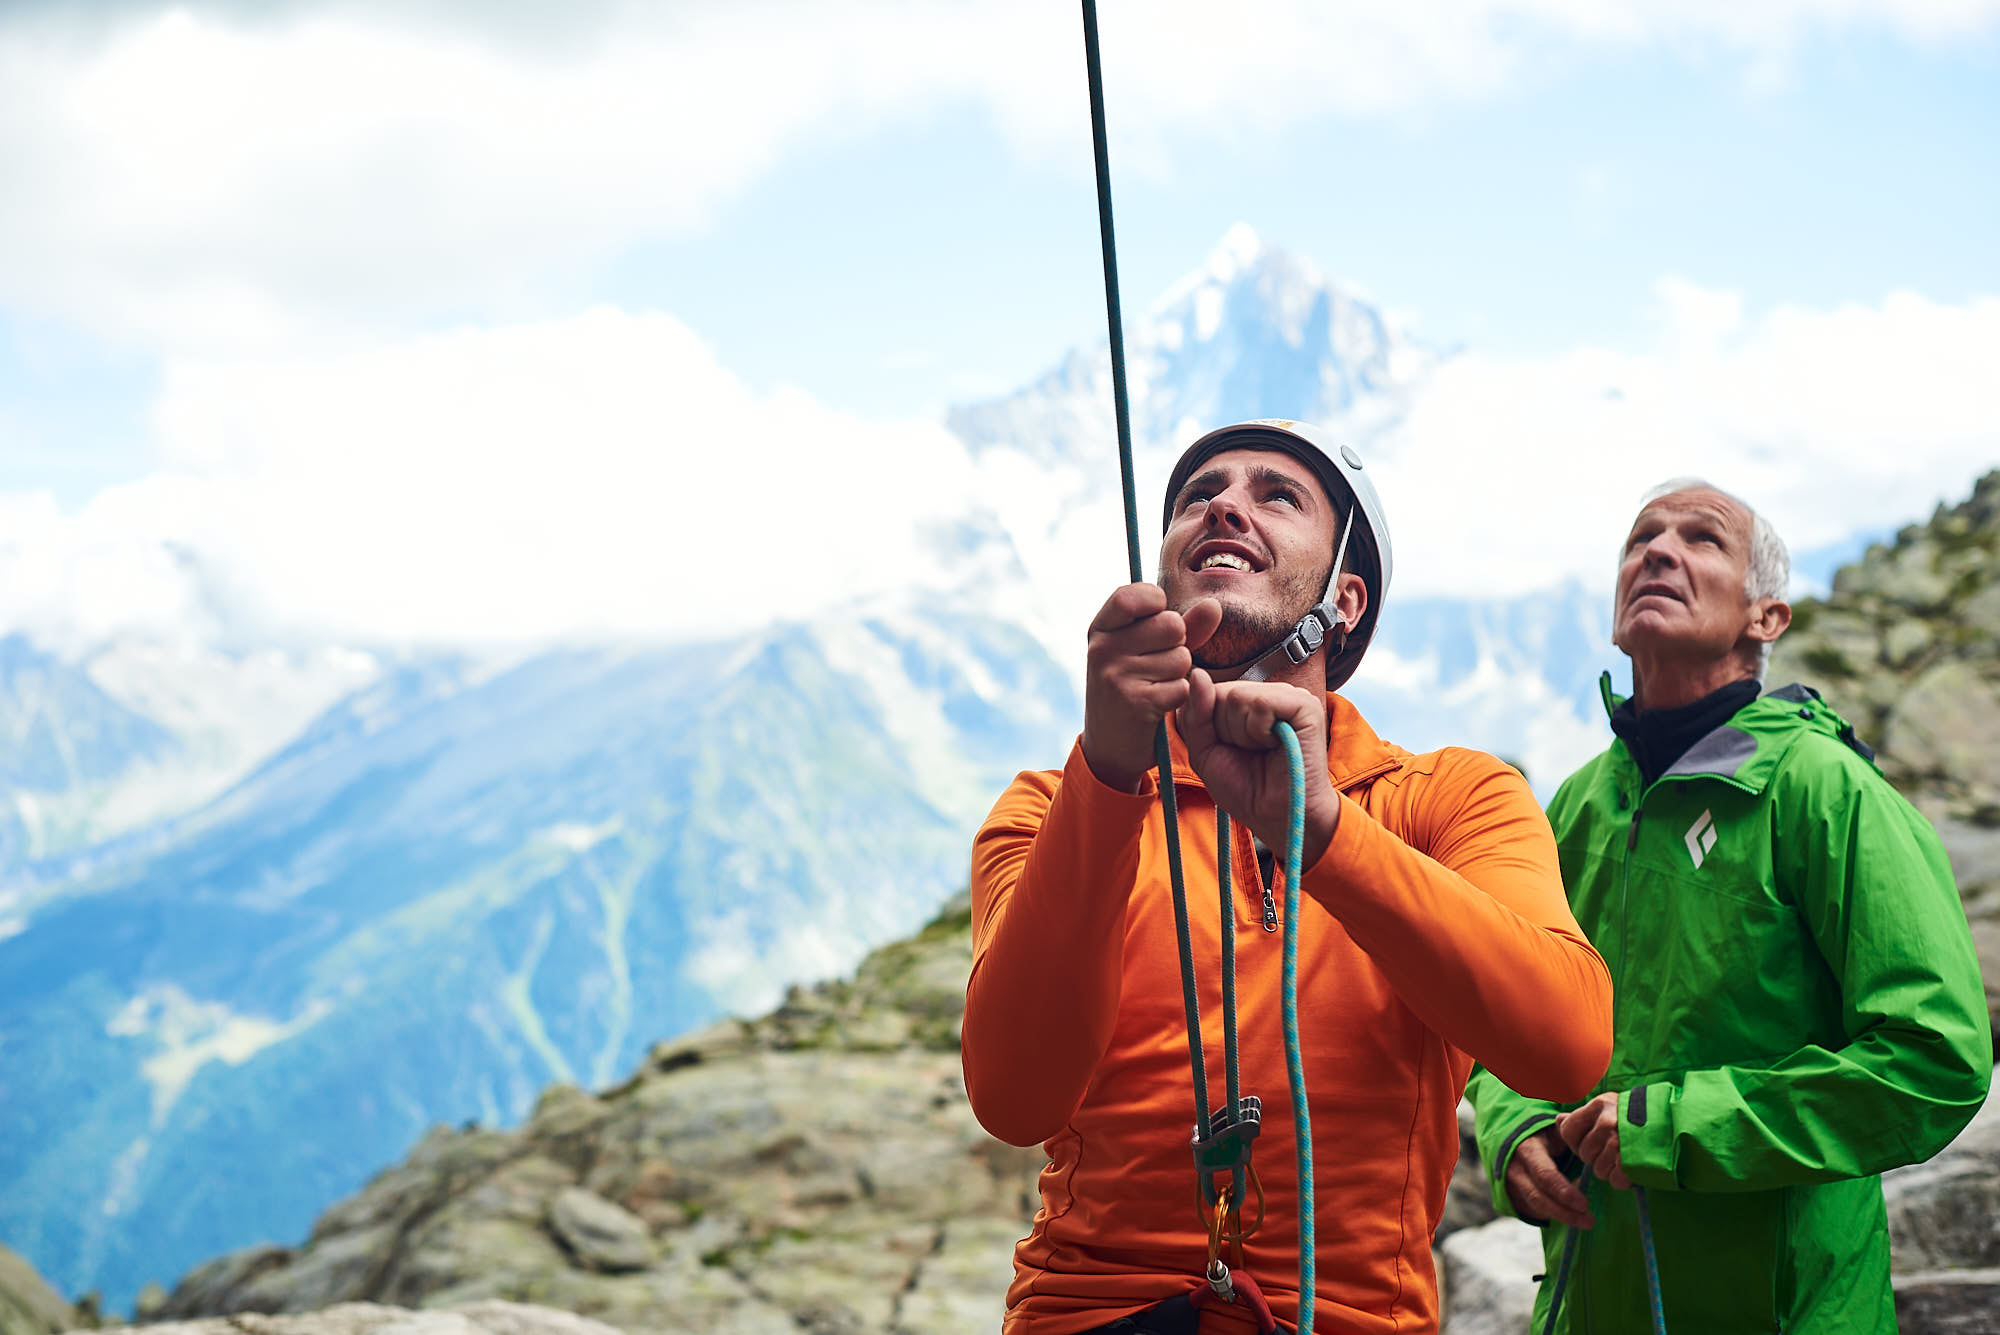 Climbers belaying a fellow mountaineer in the French Alps